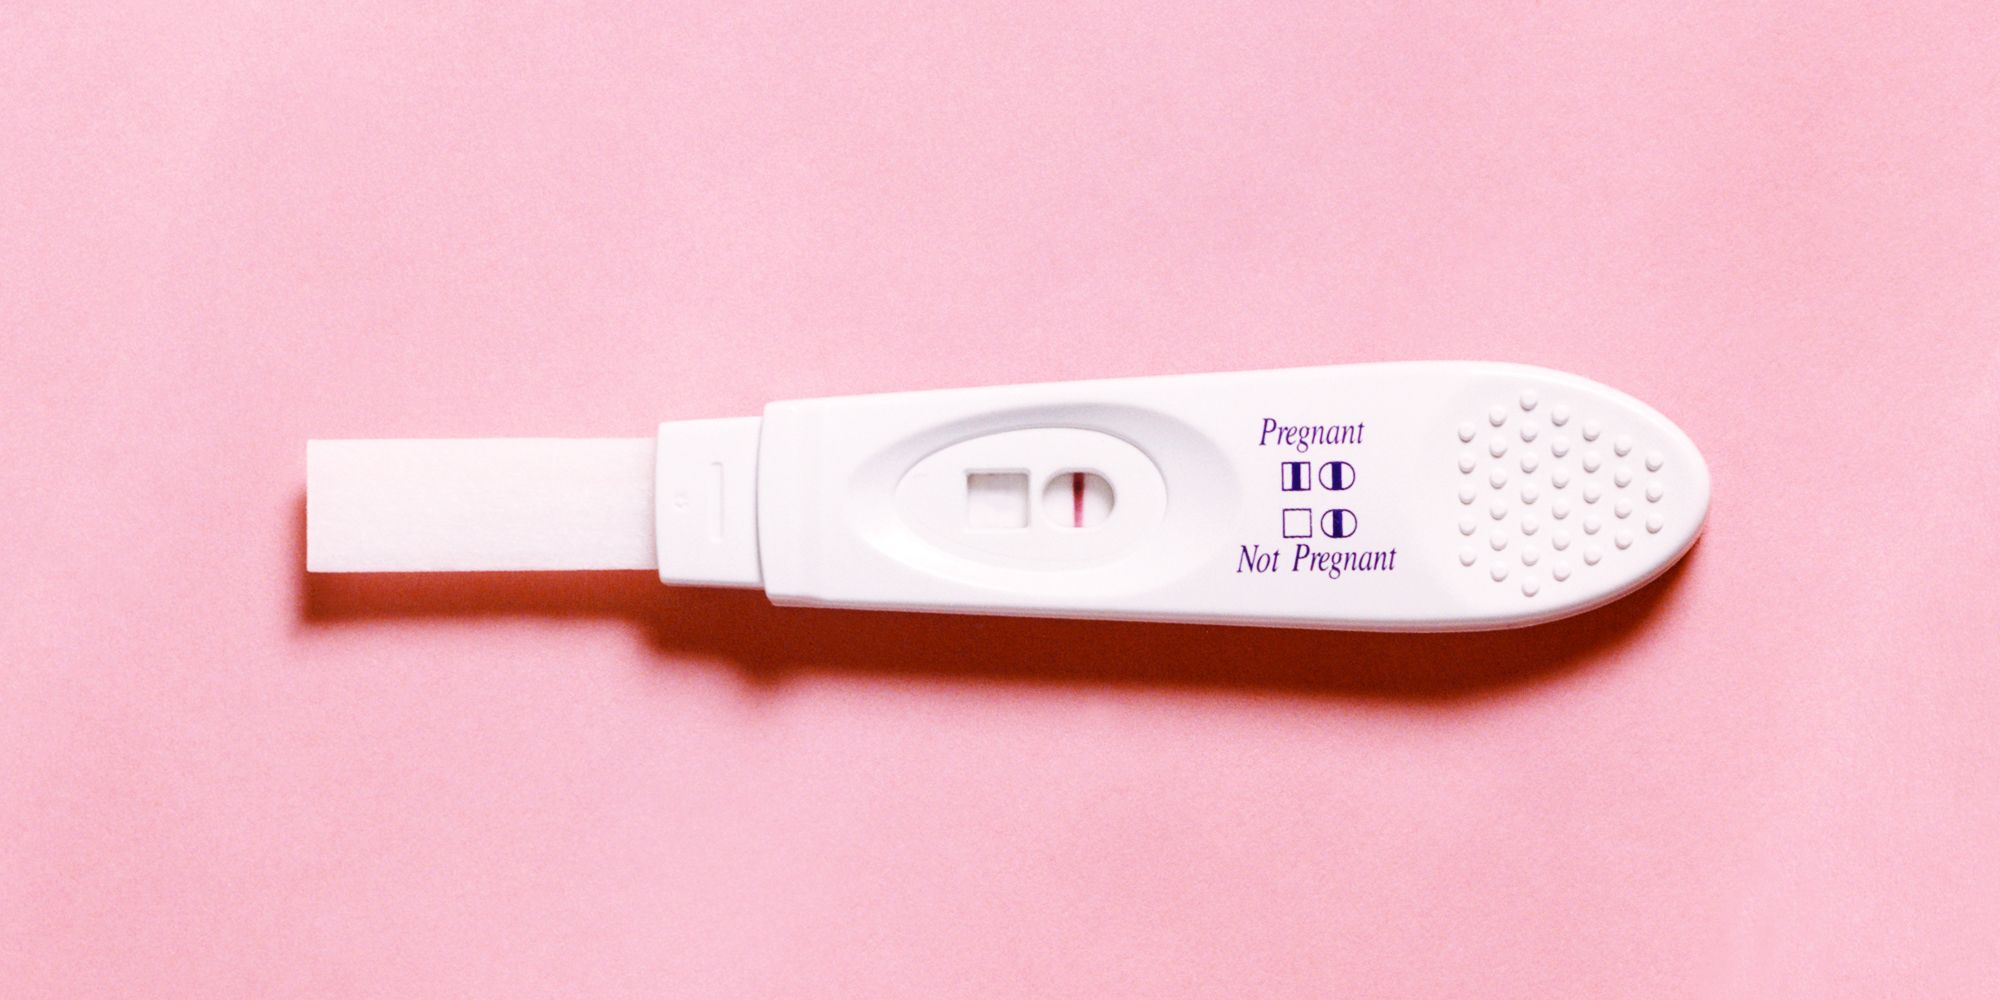 9 Things Women Who Are Going Through IVF Want You to Know